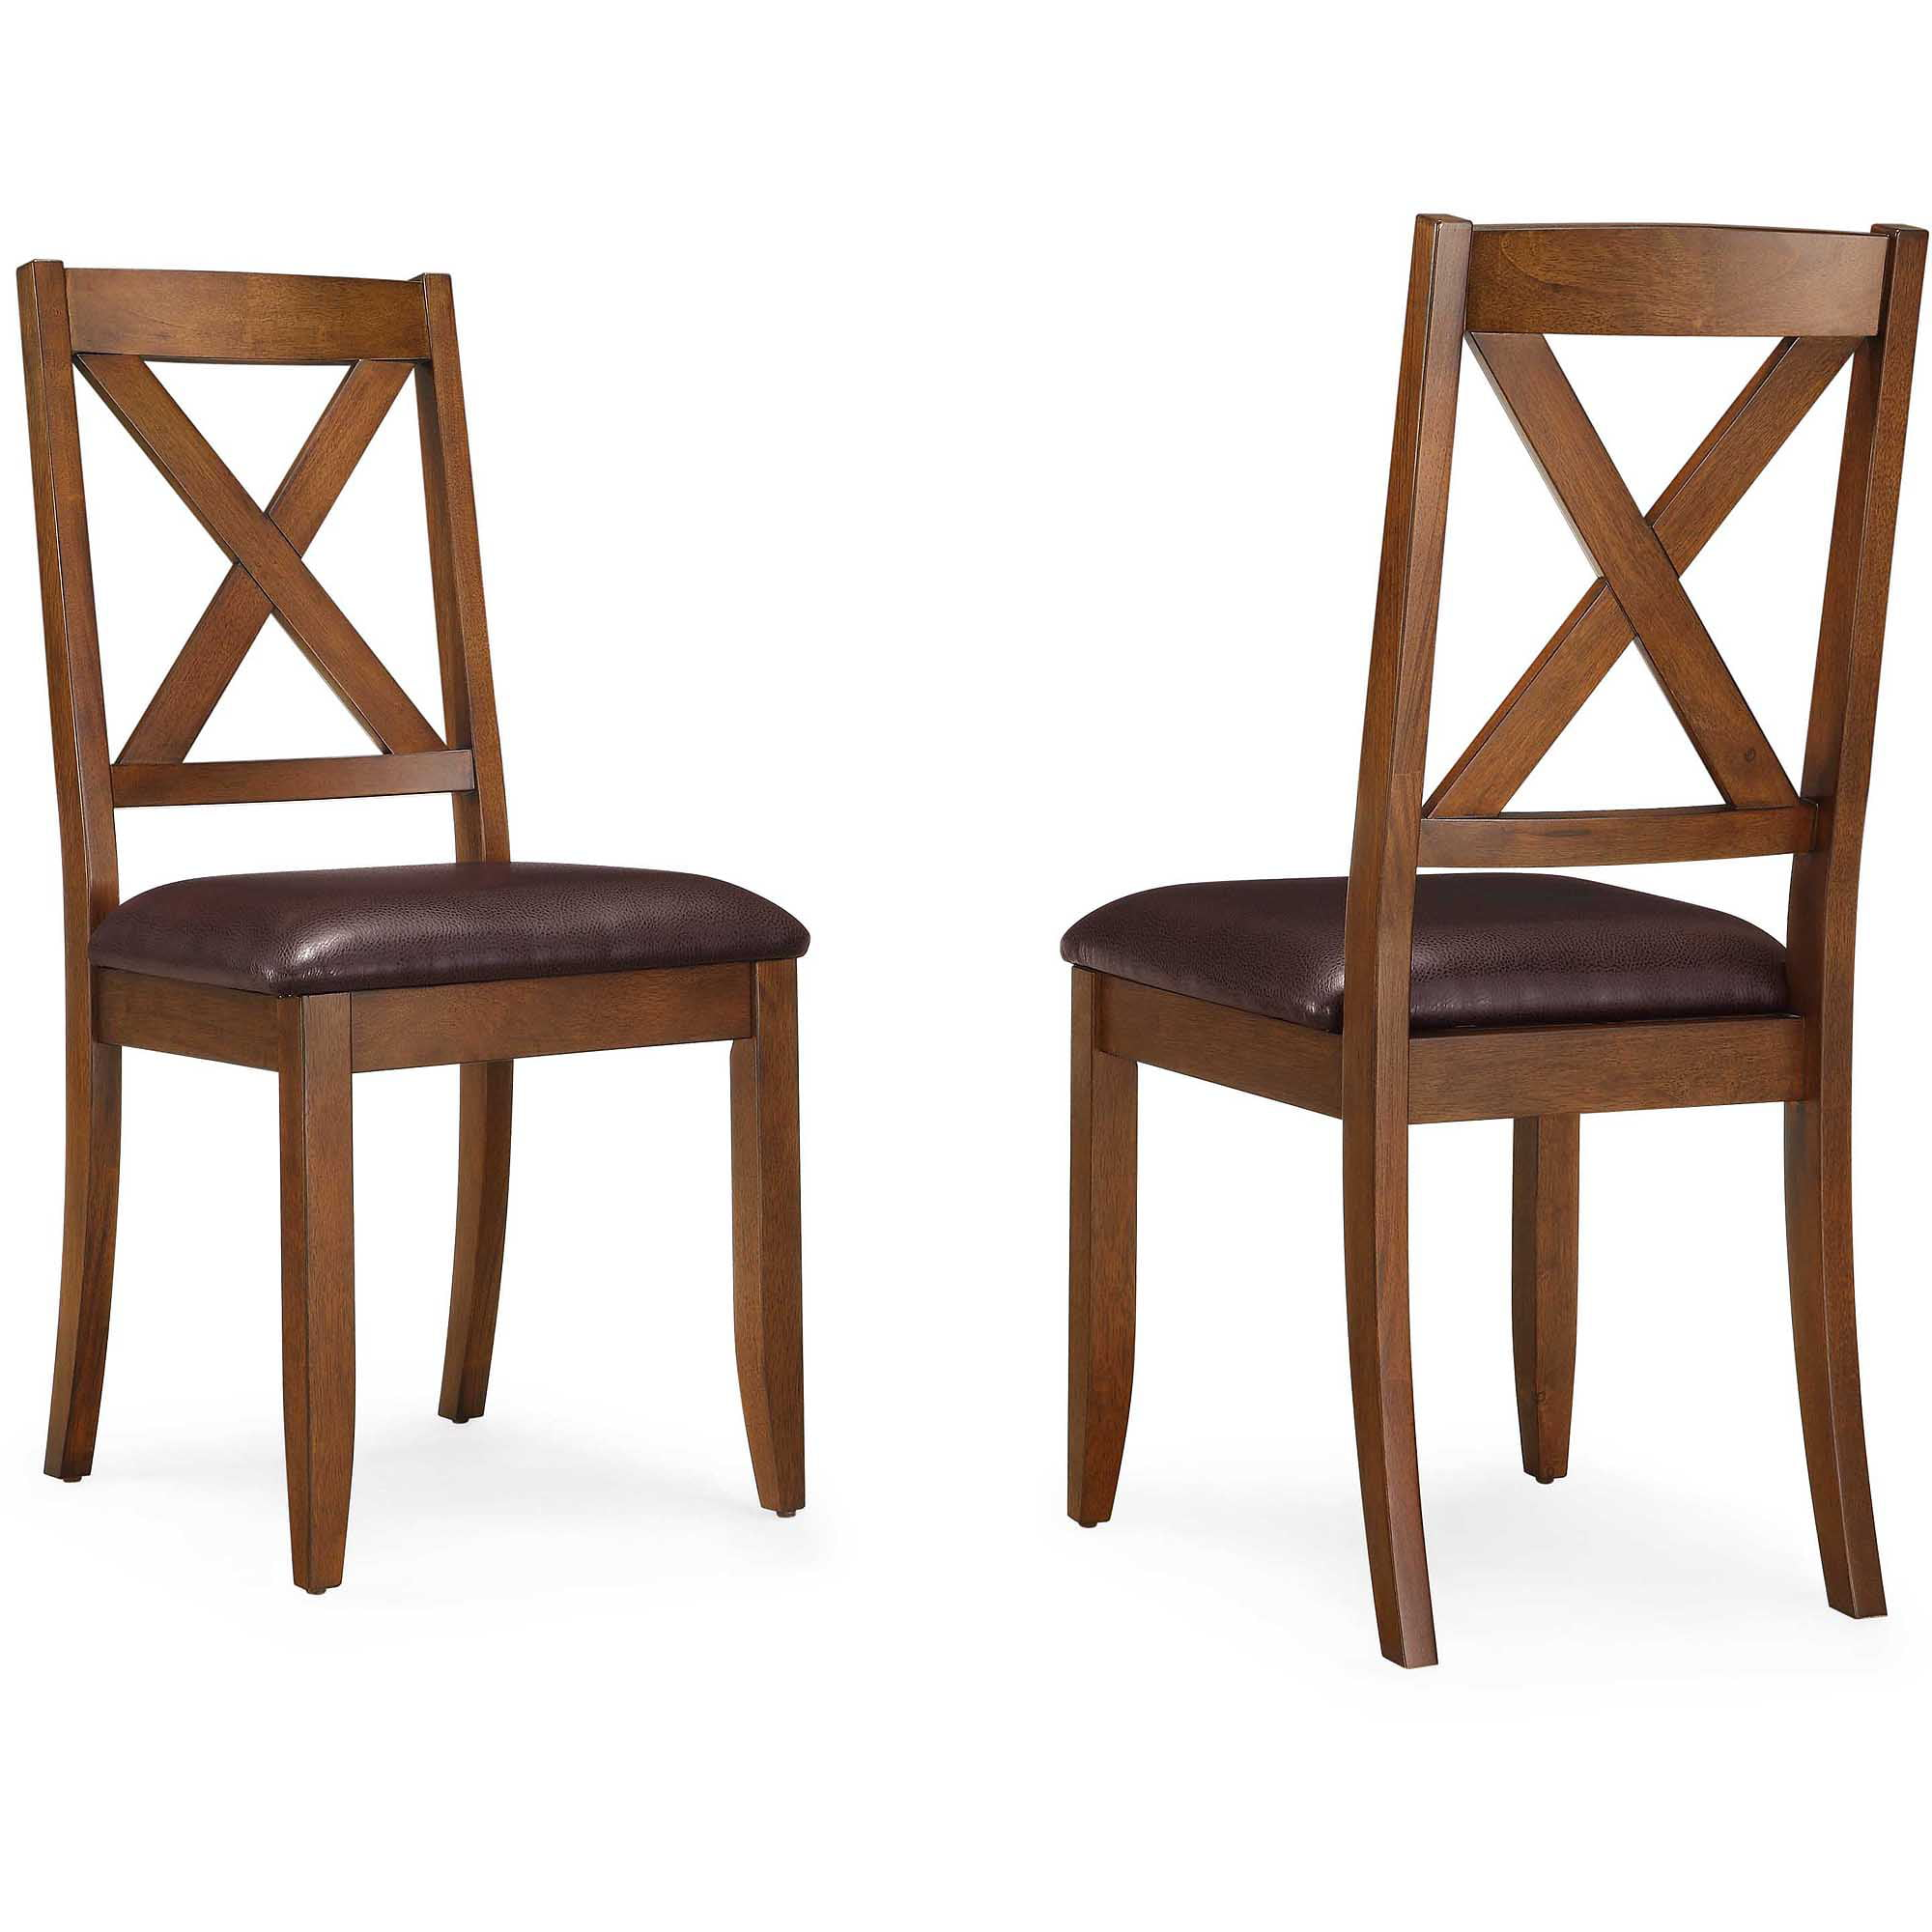 Dining Chairs Brown better homes and gardens maddox crossing dining chair, set of 2